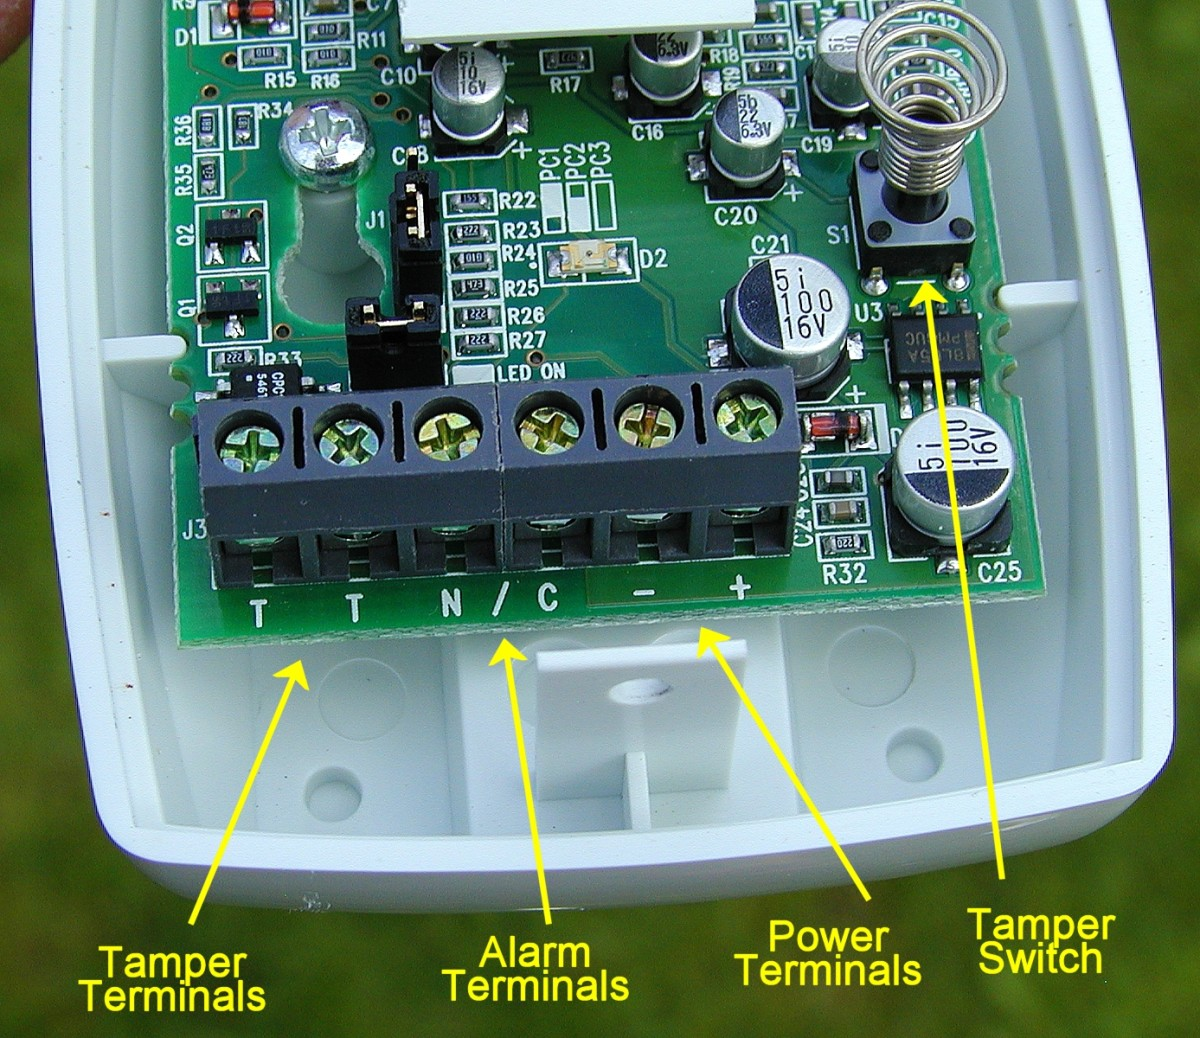 this pir sensor has 3 pairs of terminals  alarm contacts are normally  closed (n